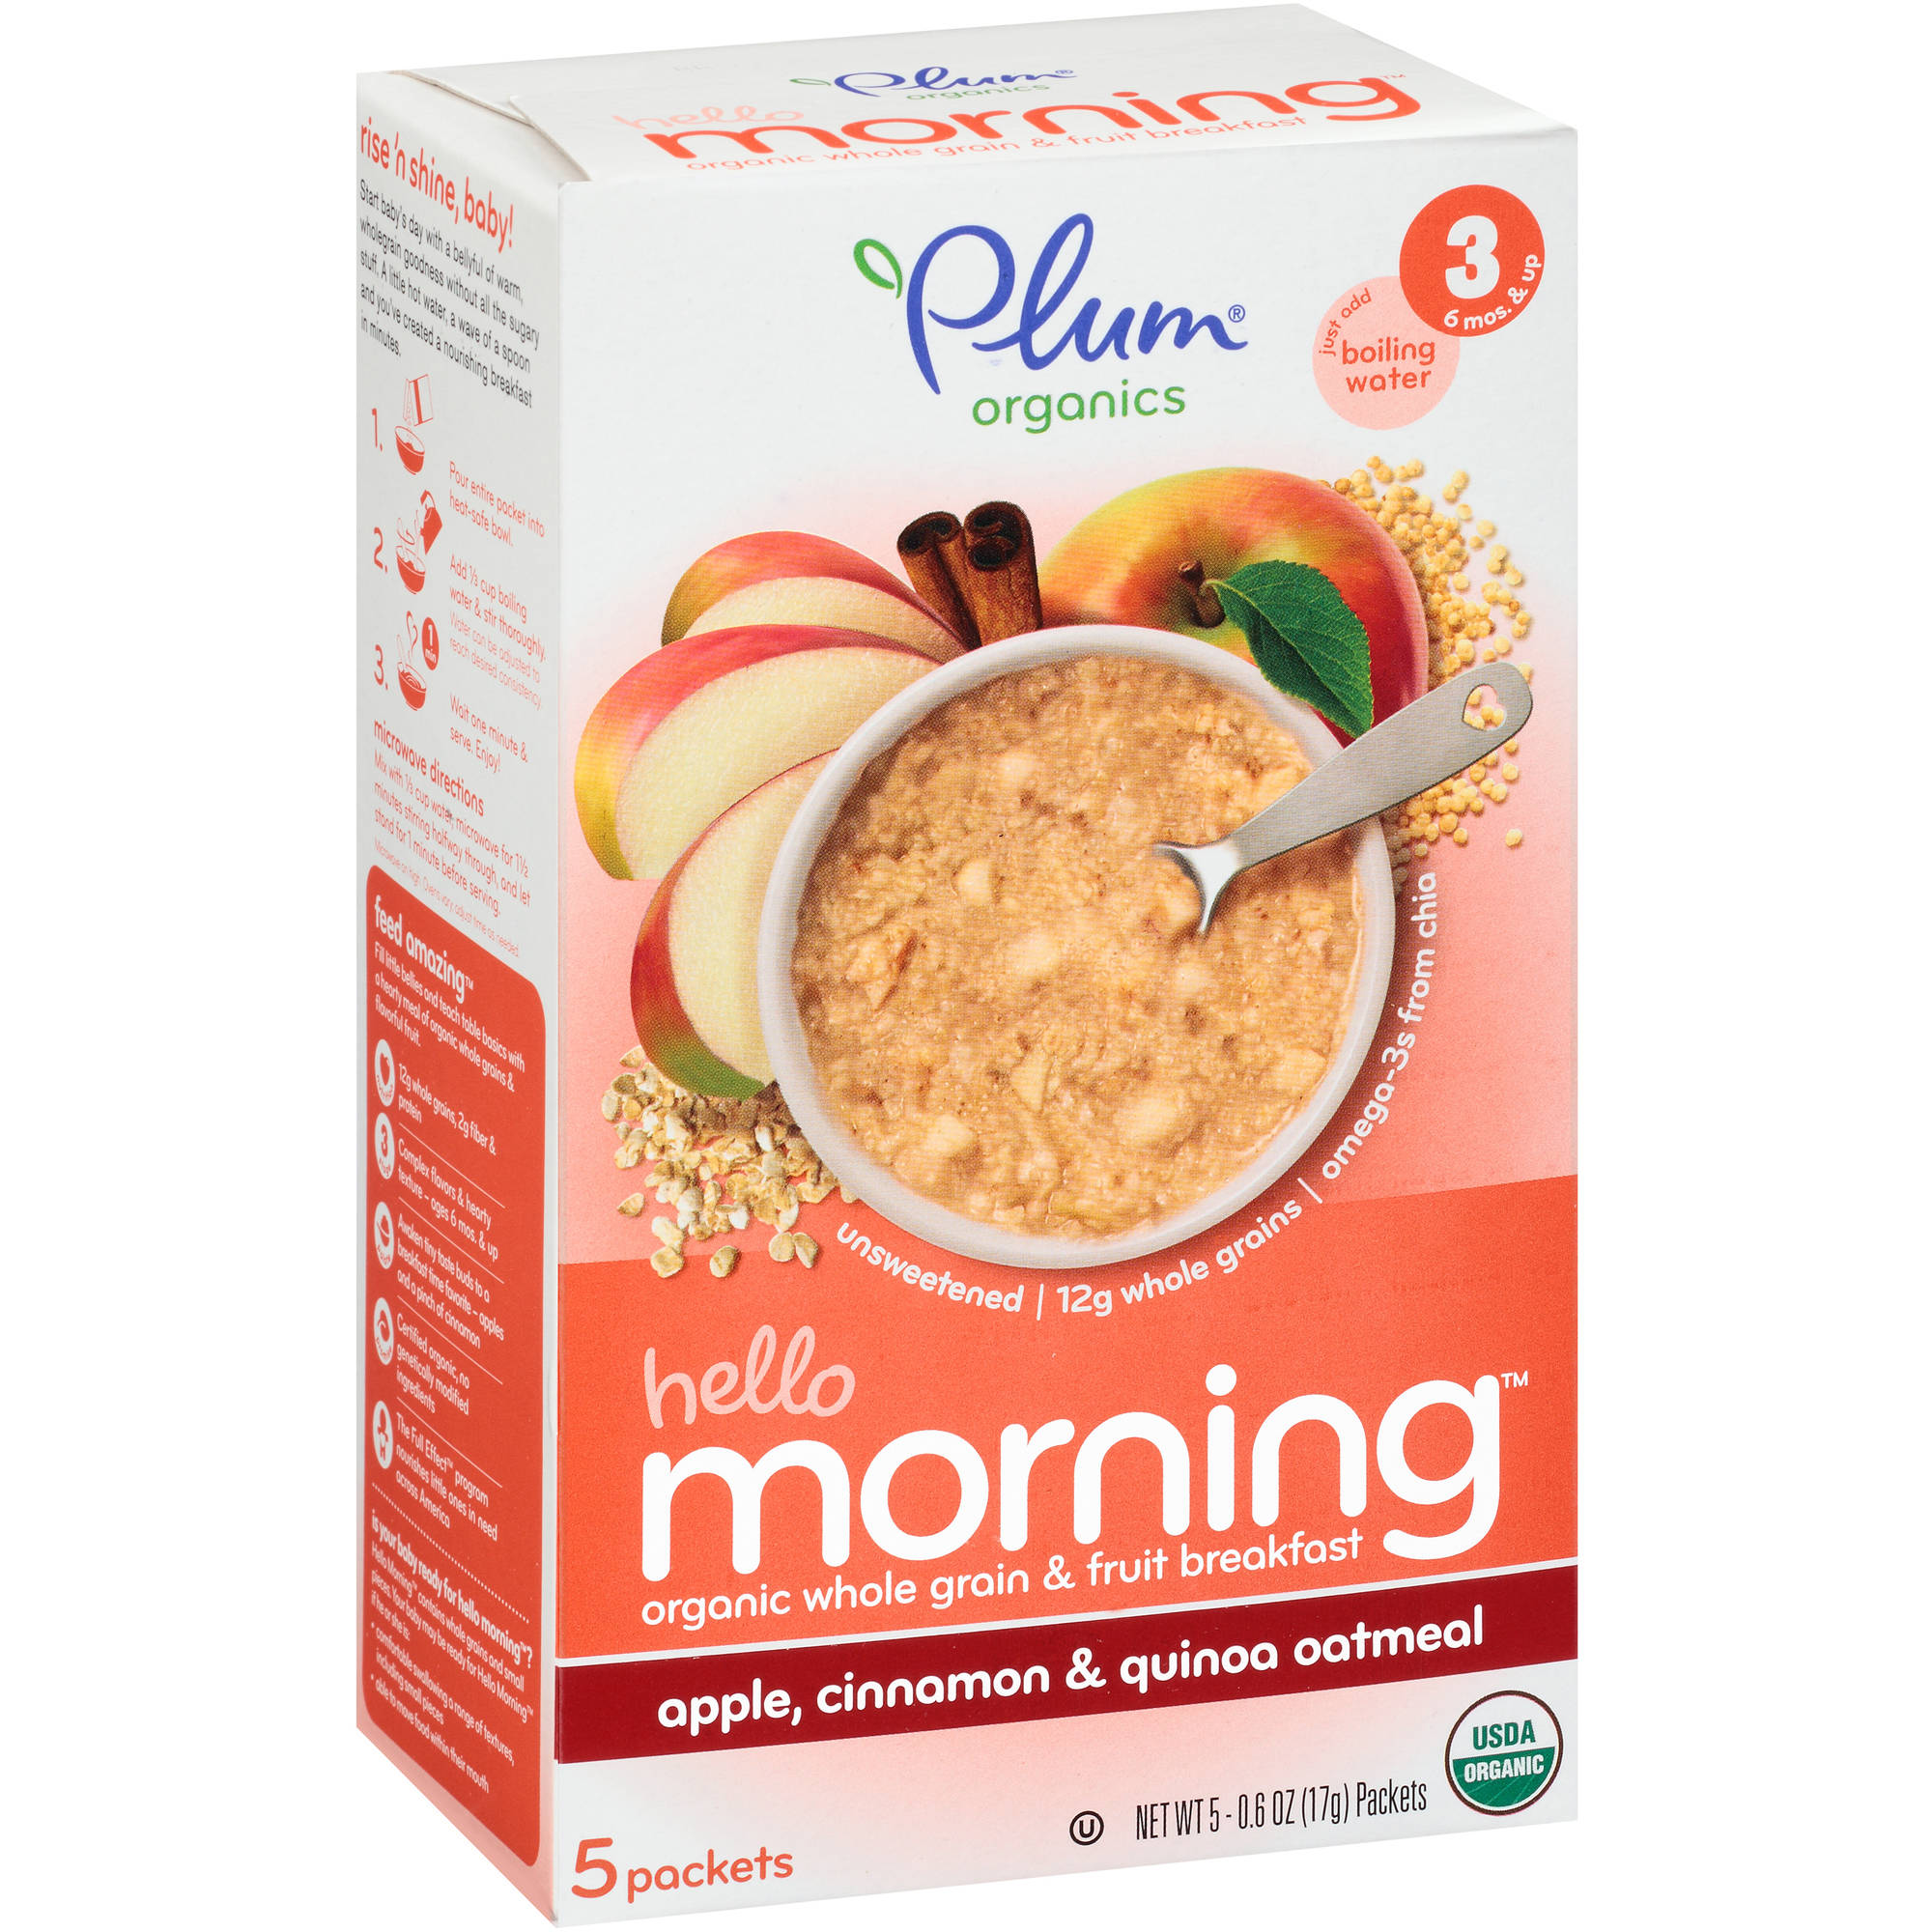 Plum Organics Hello Morning Stage 3 Apple, Cinnamon, & Quinoa Oatmeal Baby Food, 0.6 oz, 5 count (Pack of 6)